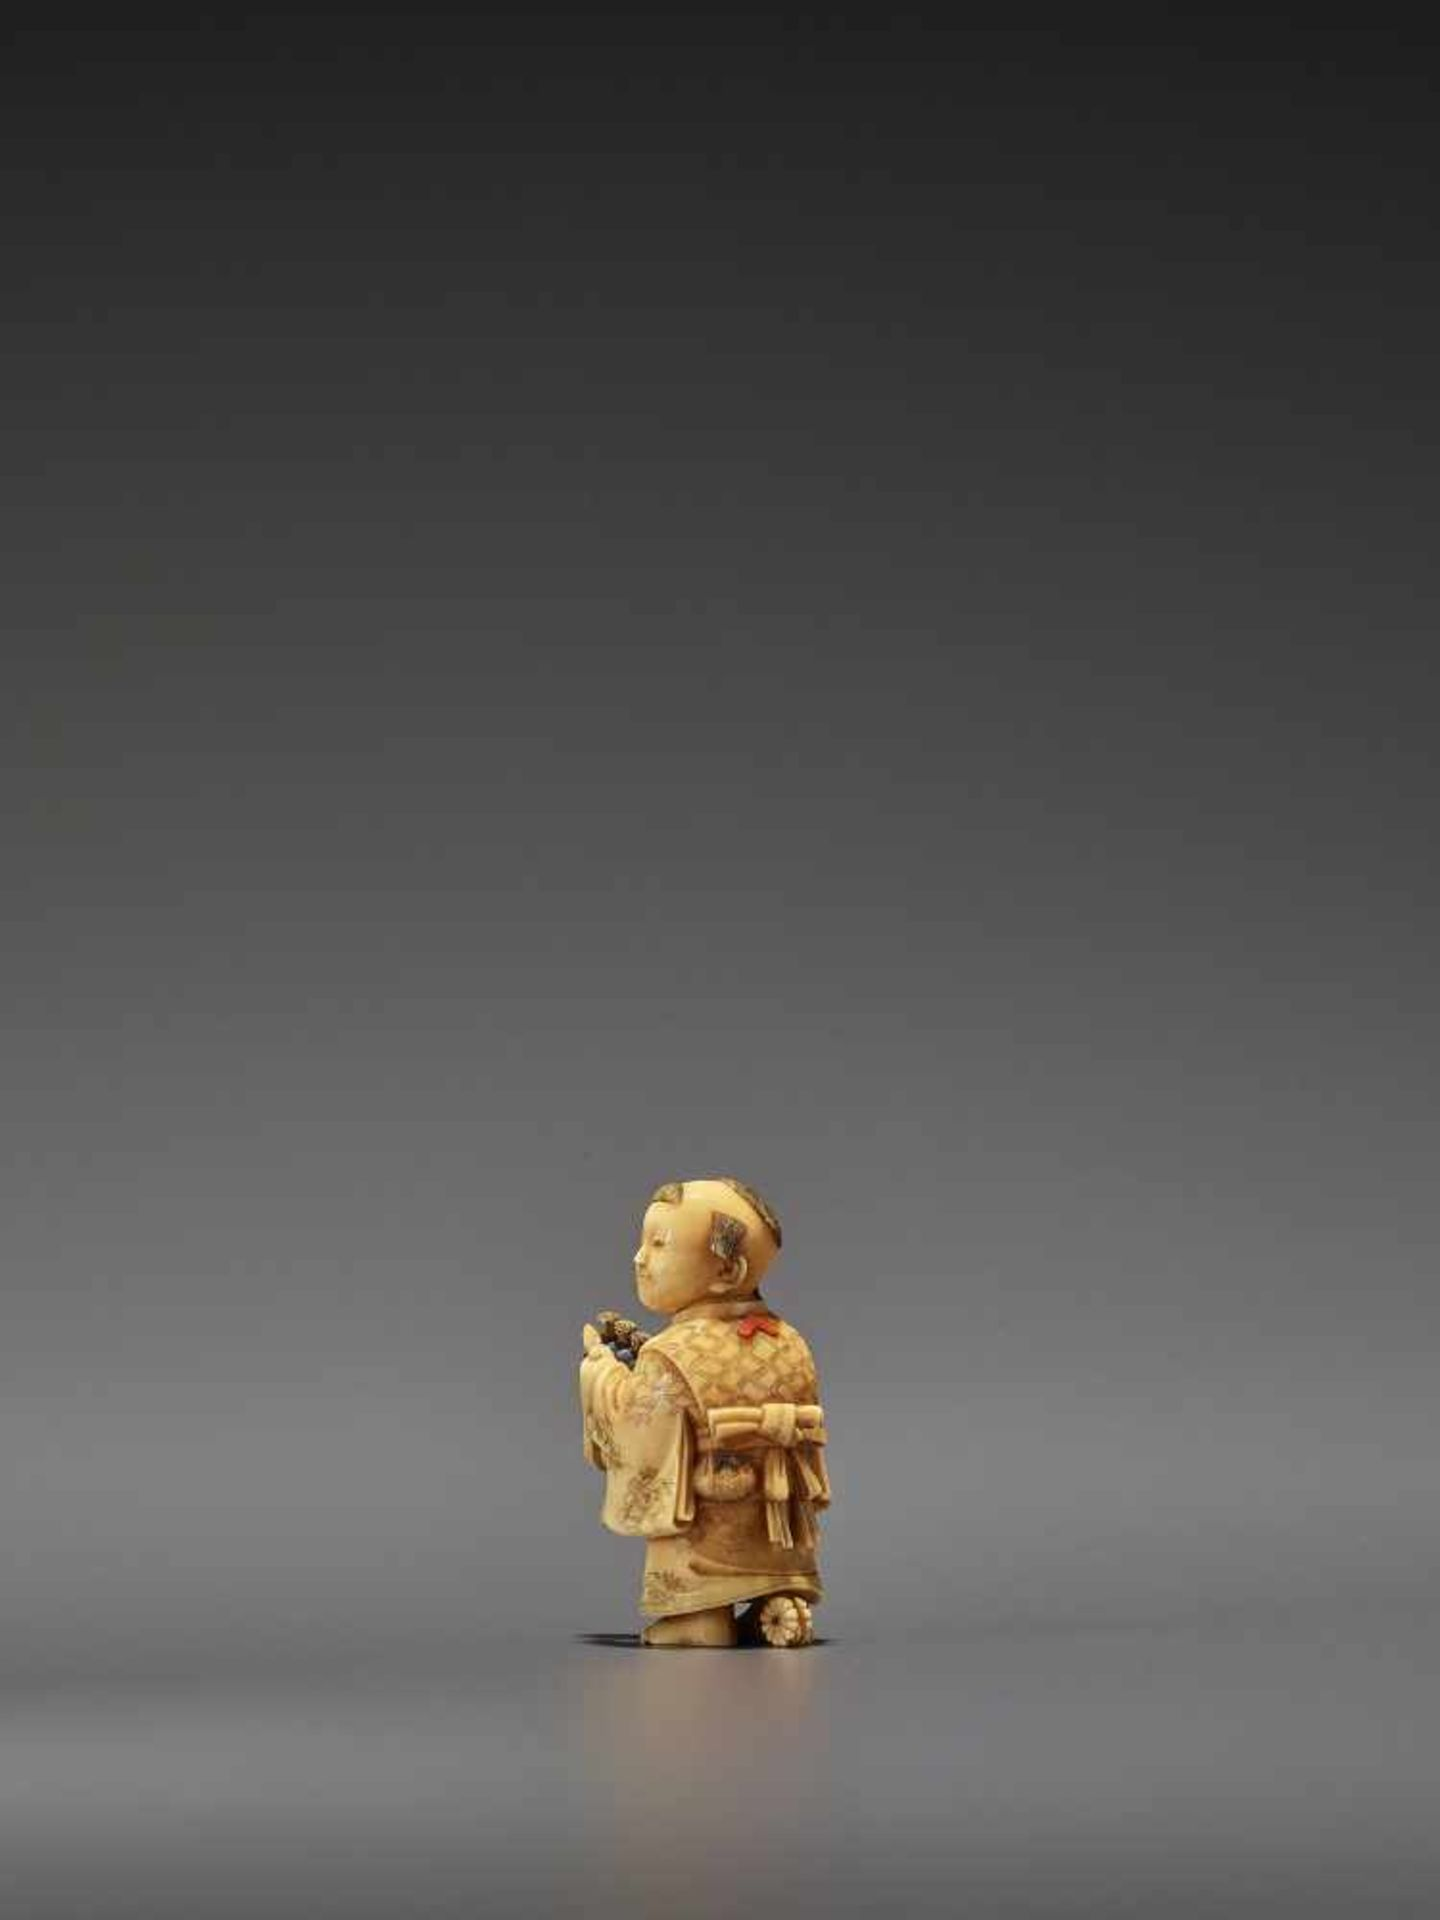 RYOMIN: A VERY FINE IVORY NETSUKE OF A BOY WITH HOBBY HORSE By Ono Ryomin, signed Ryomin with - Image 2 of 11